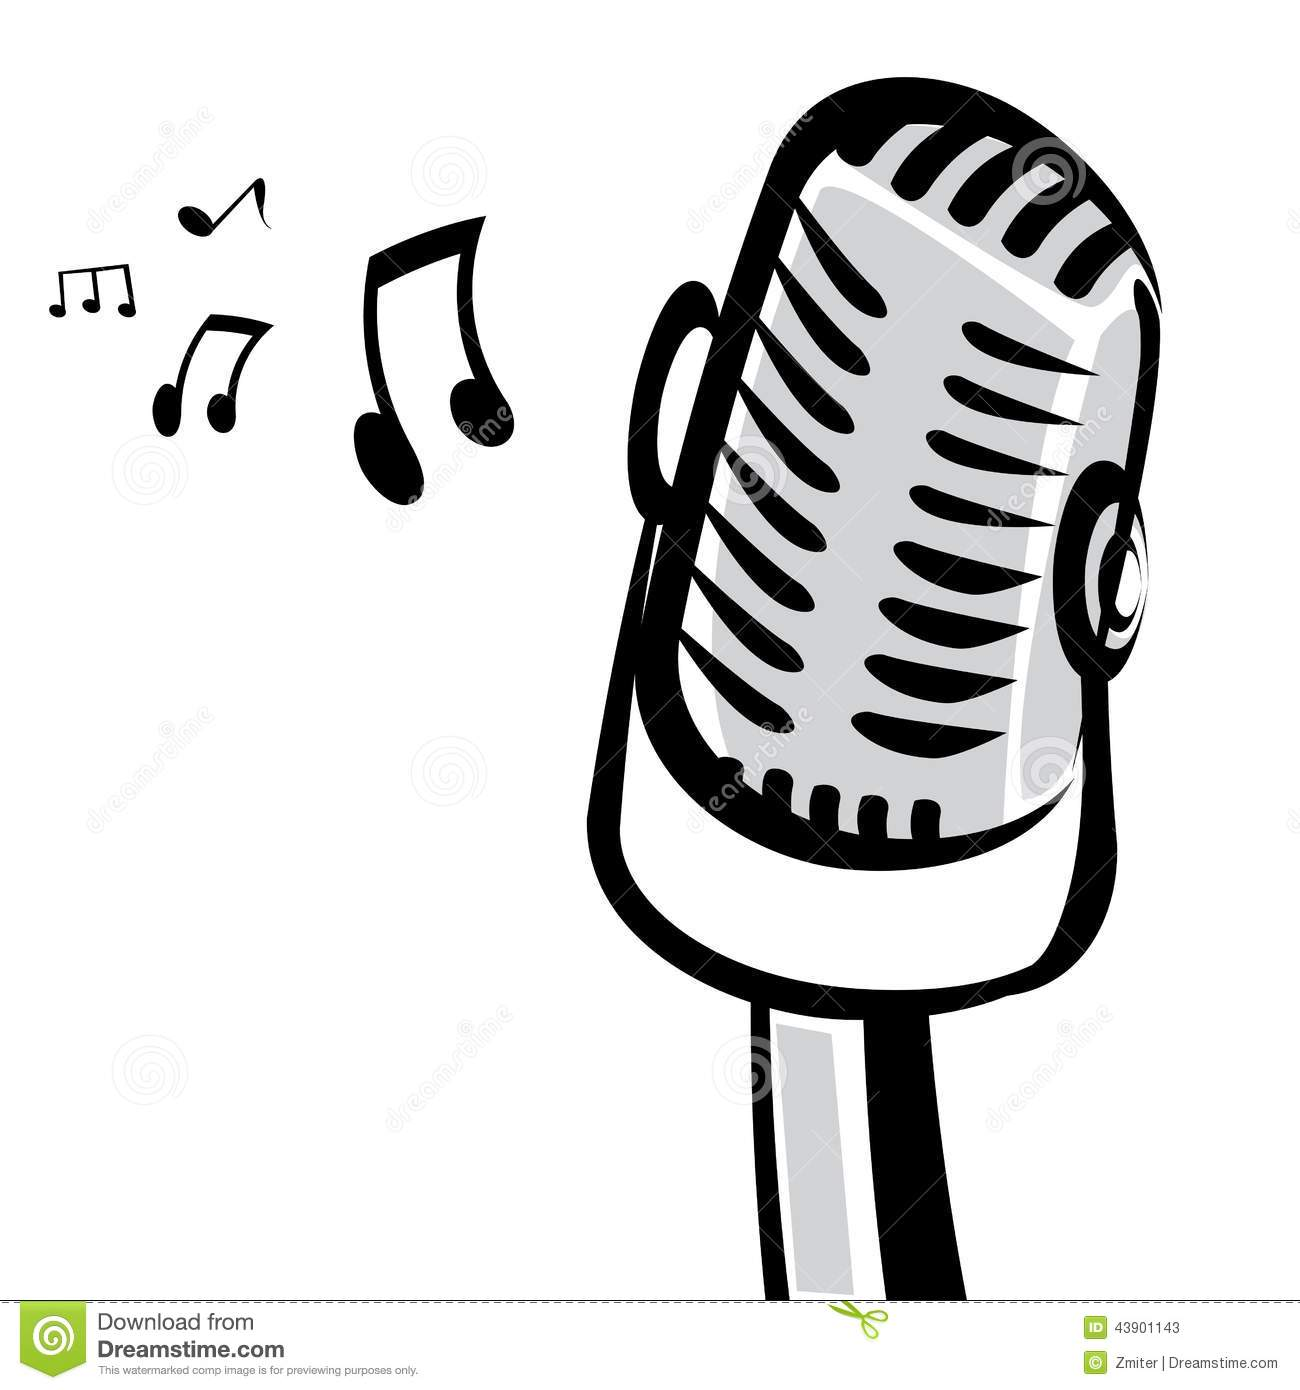 Jeremy Corbyn Is Less Popular With Labour Mps Than He Is With Members Is That A Problem also Stock Illustration Retro Microphone Silhouette Vector Illustration Vintage White Image43901143 further Radio Clip Art as well Radio Show Microphone as well No Tv. on old time radio clip art